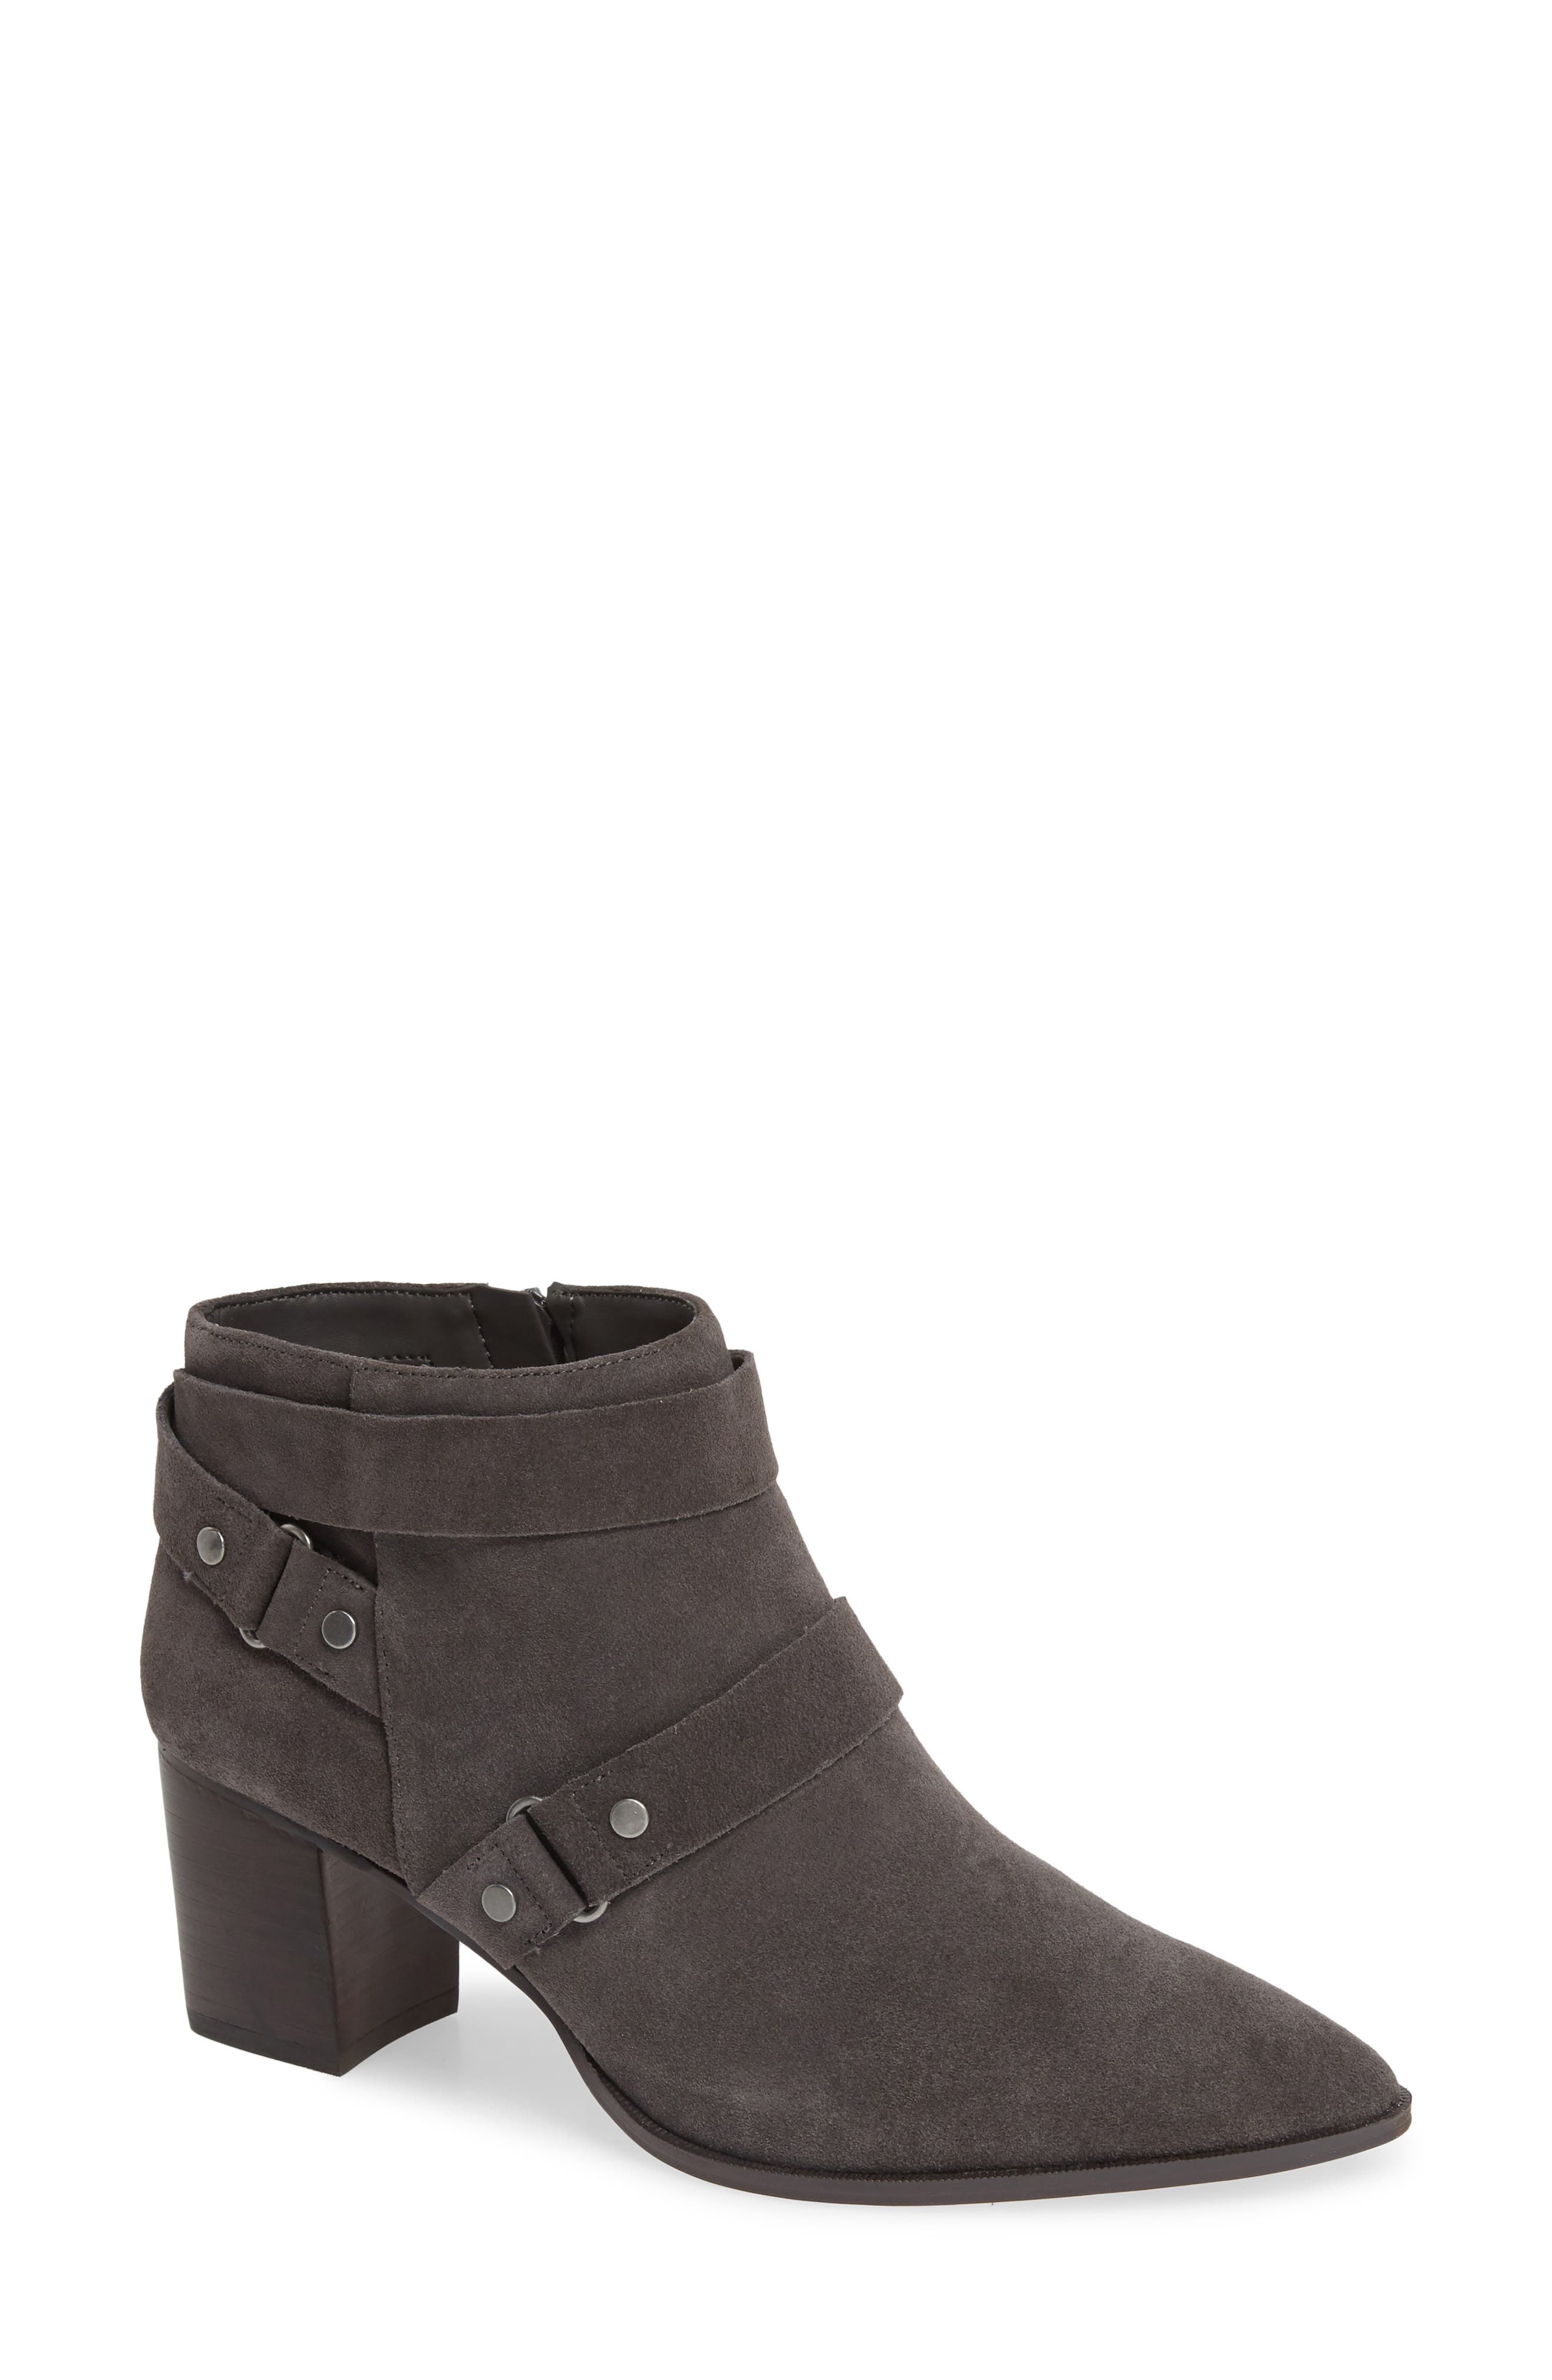 SOLE SOCIETY,                             Dariela Strappy Bootie,                             Main thumbnail 1, color,                             IRON SUEDE